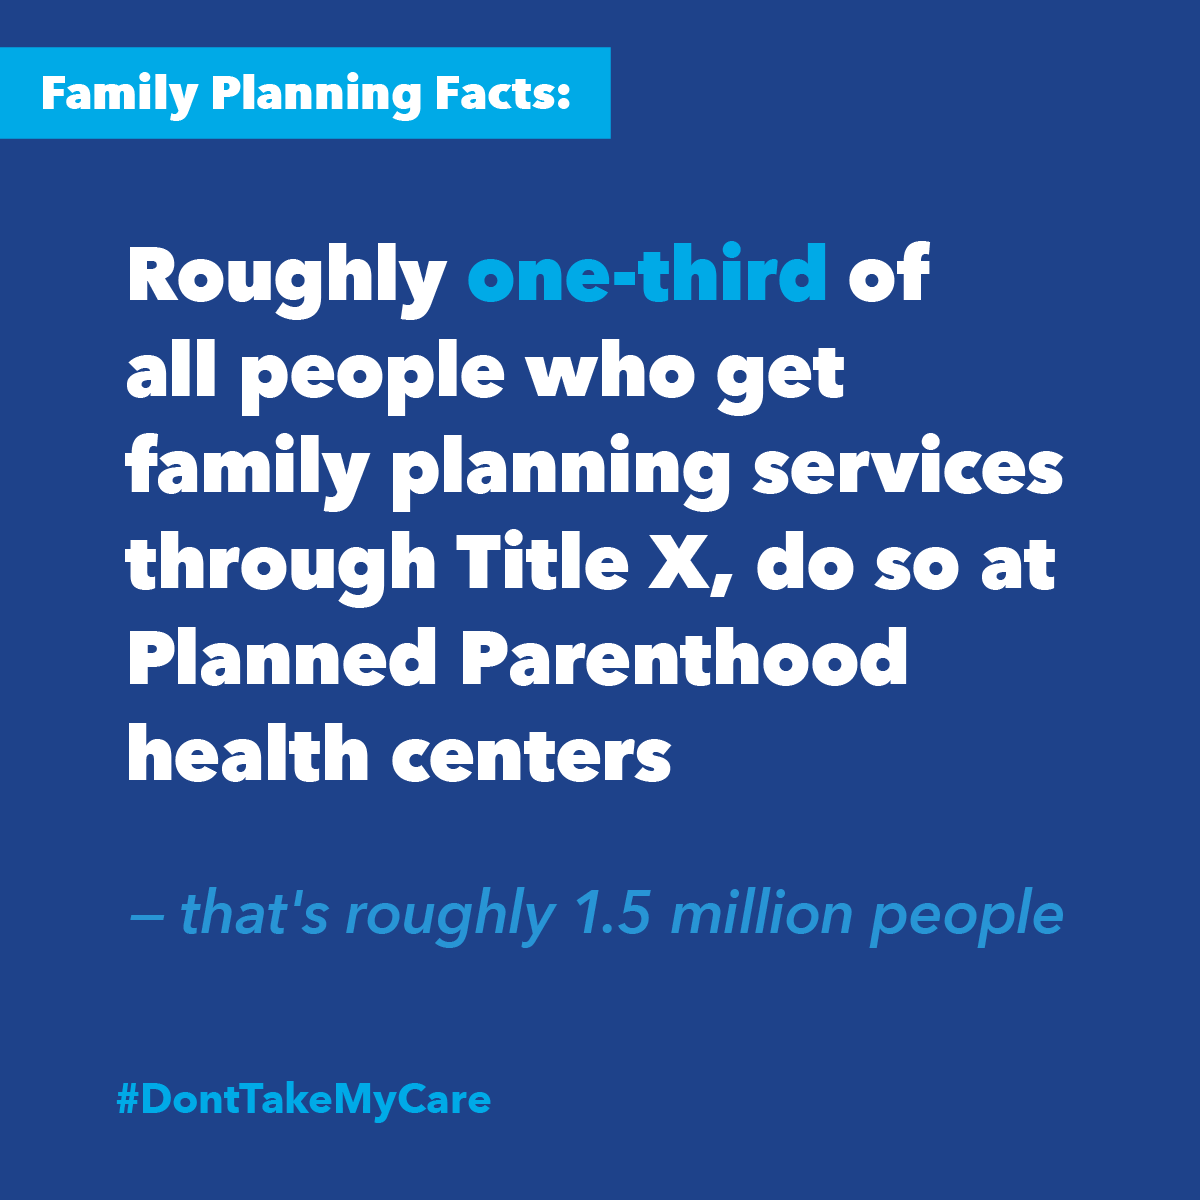 Title X supports patients who chose care at Planned Parenthood.